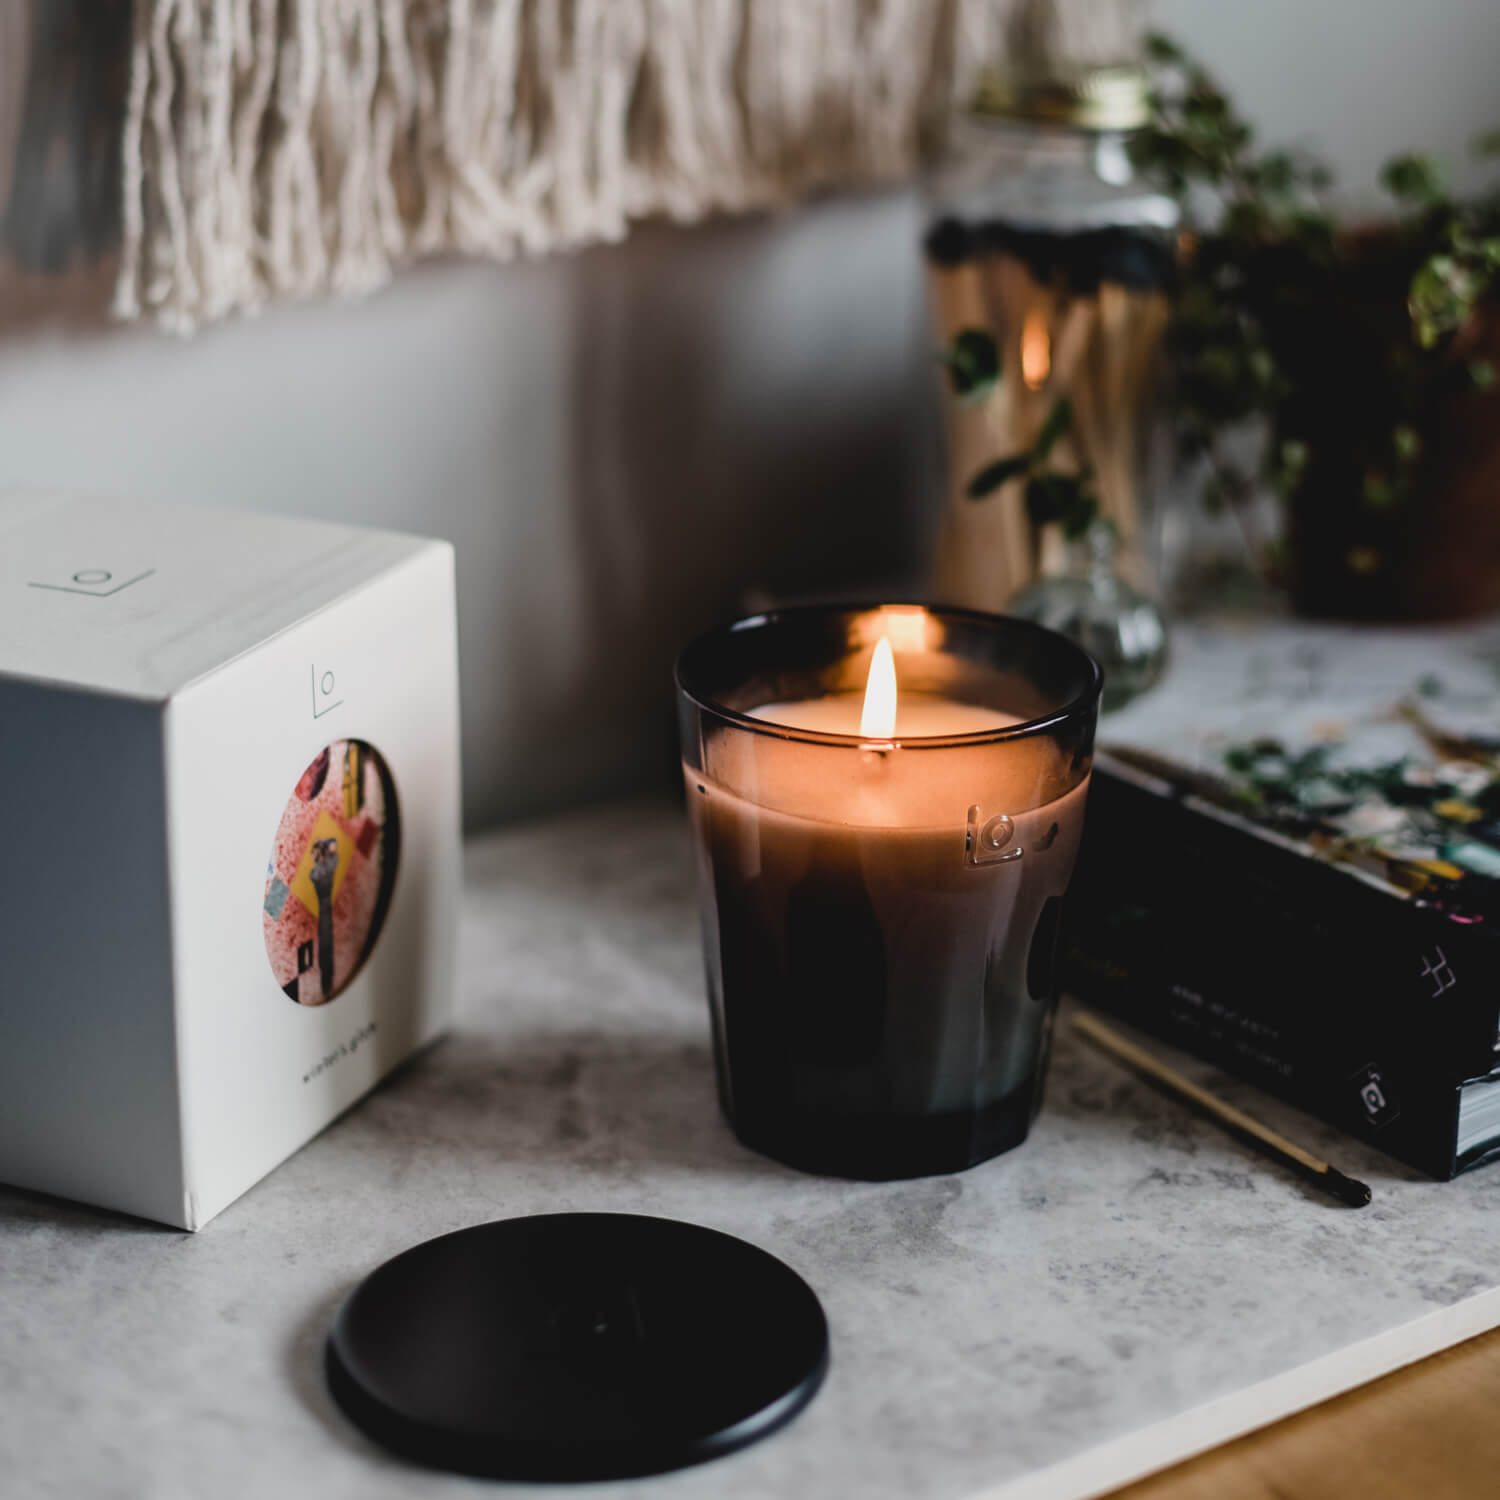 Winter's Glow Candle by LO Studio